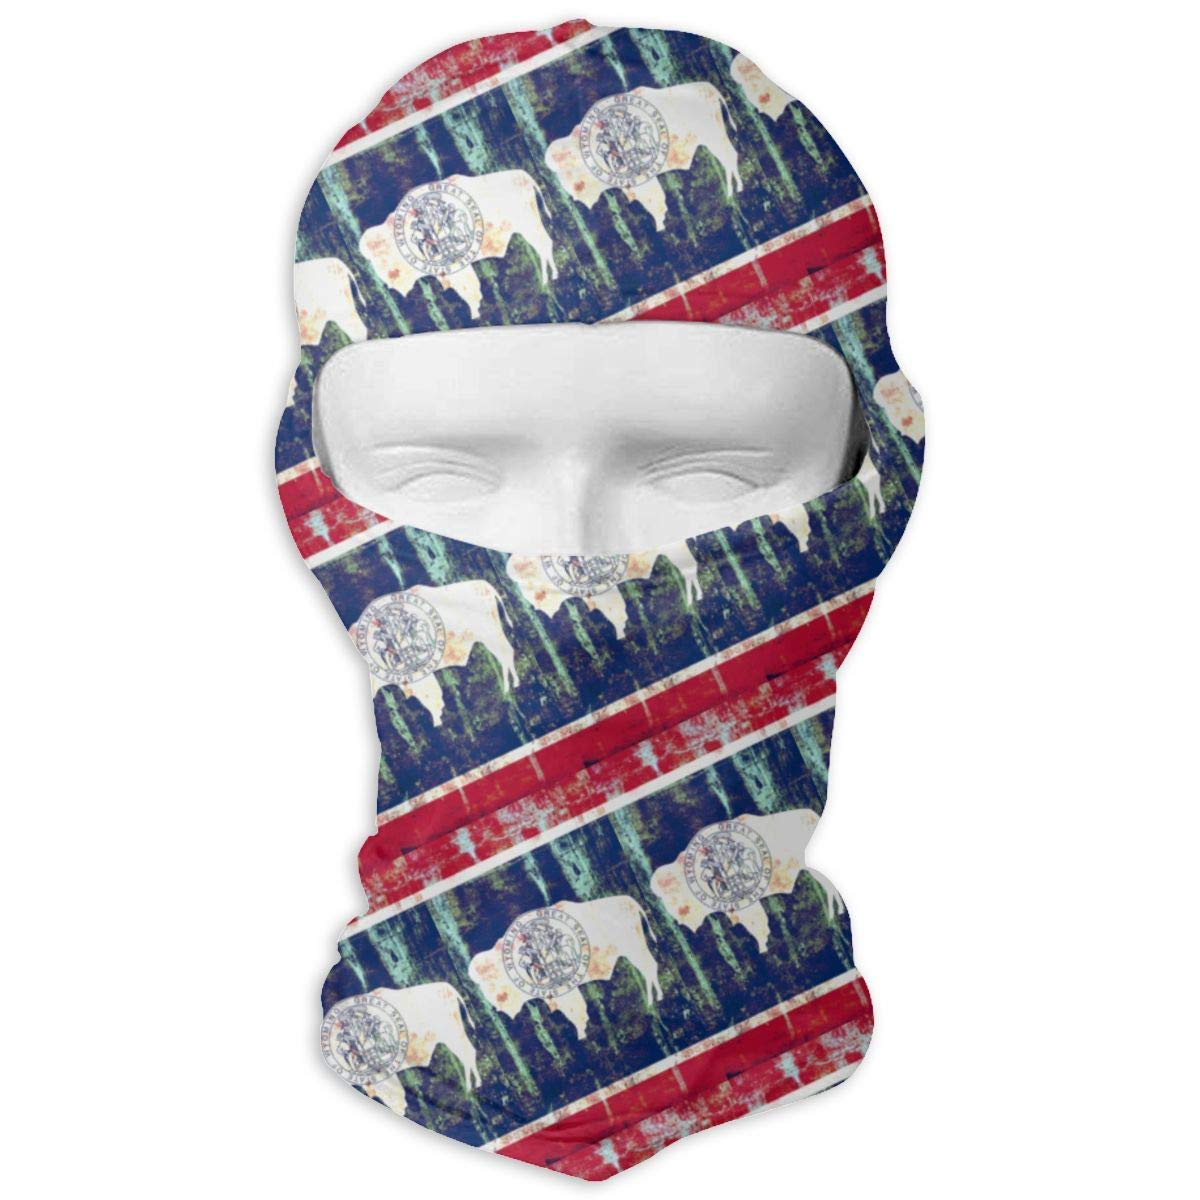 Gxdchfj Wyoming Flags of The U S States Balaclava Face Mask